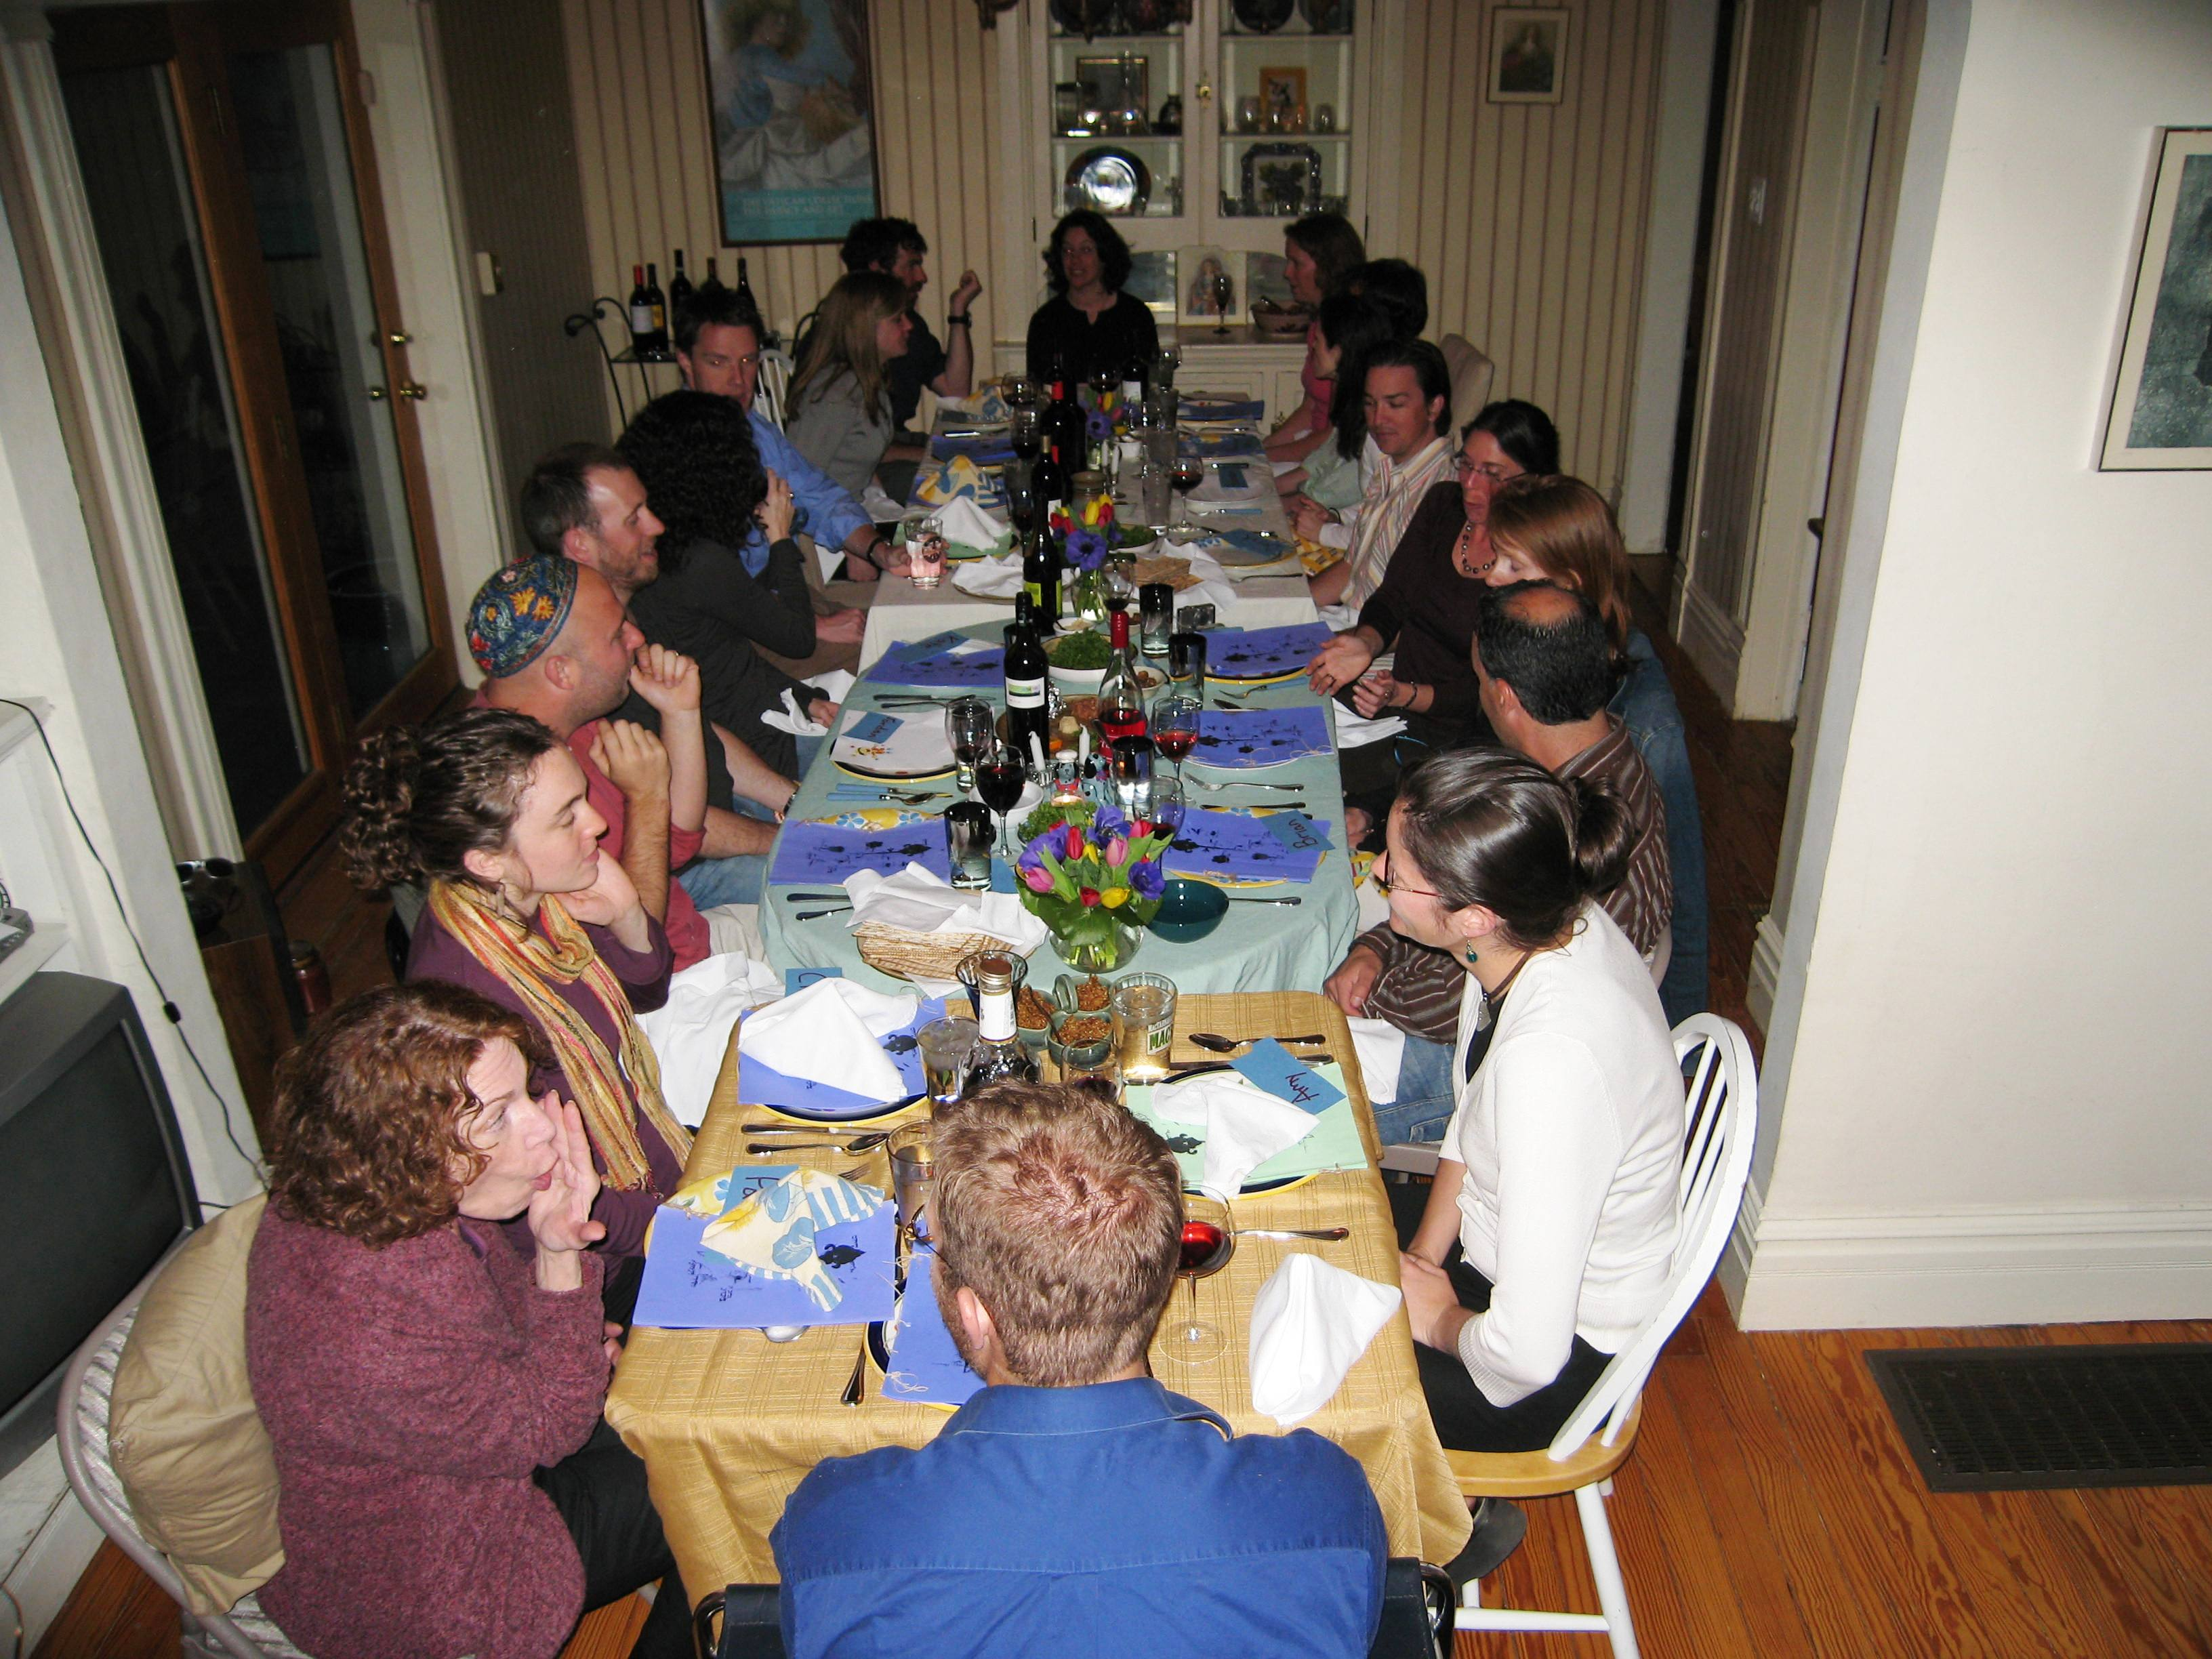 Passover Seder at my house